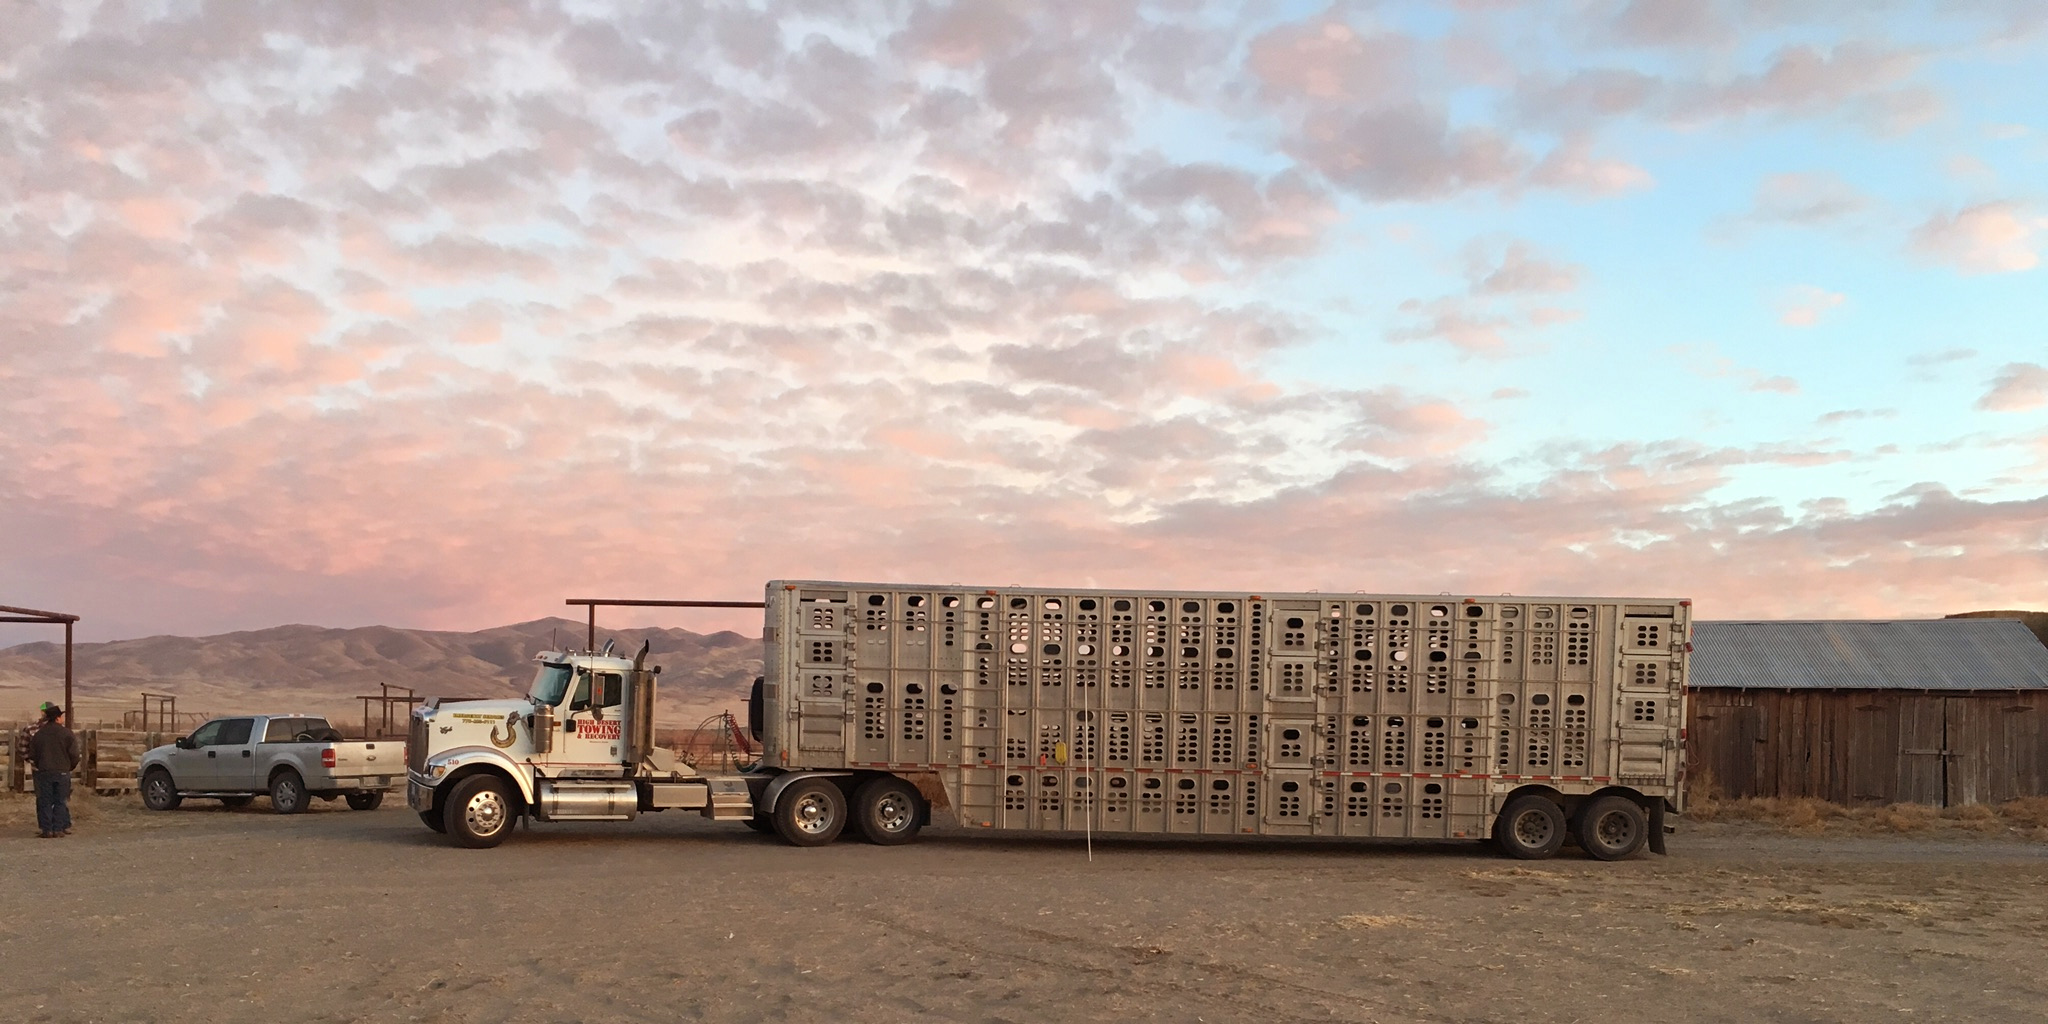 Cattle Trucks for Hire or Rent